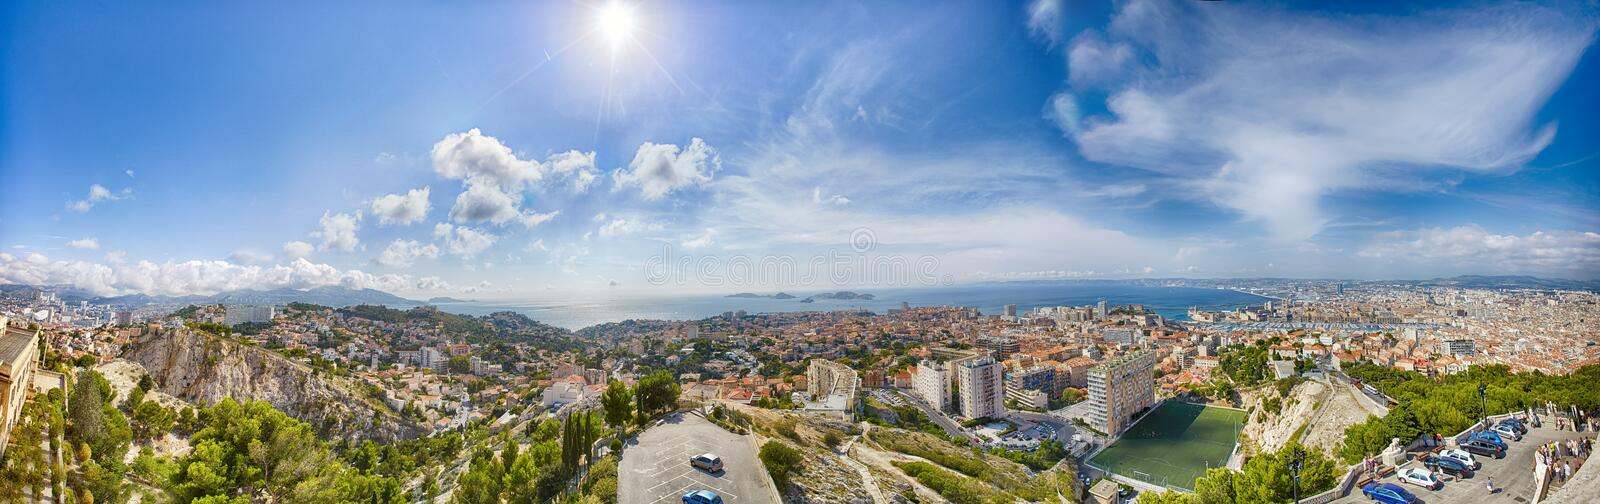 Panoramic view of the Vieux port of Marseille and Notre Dame de la Garde at back, France royalty free stock images